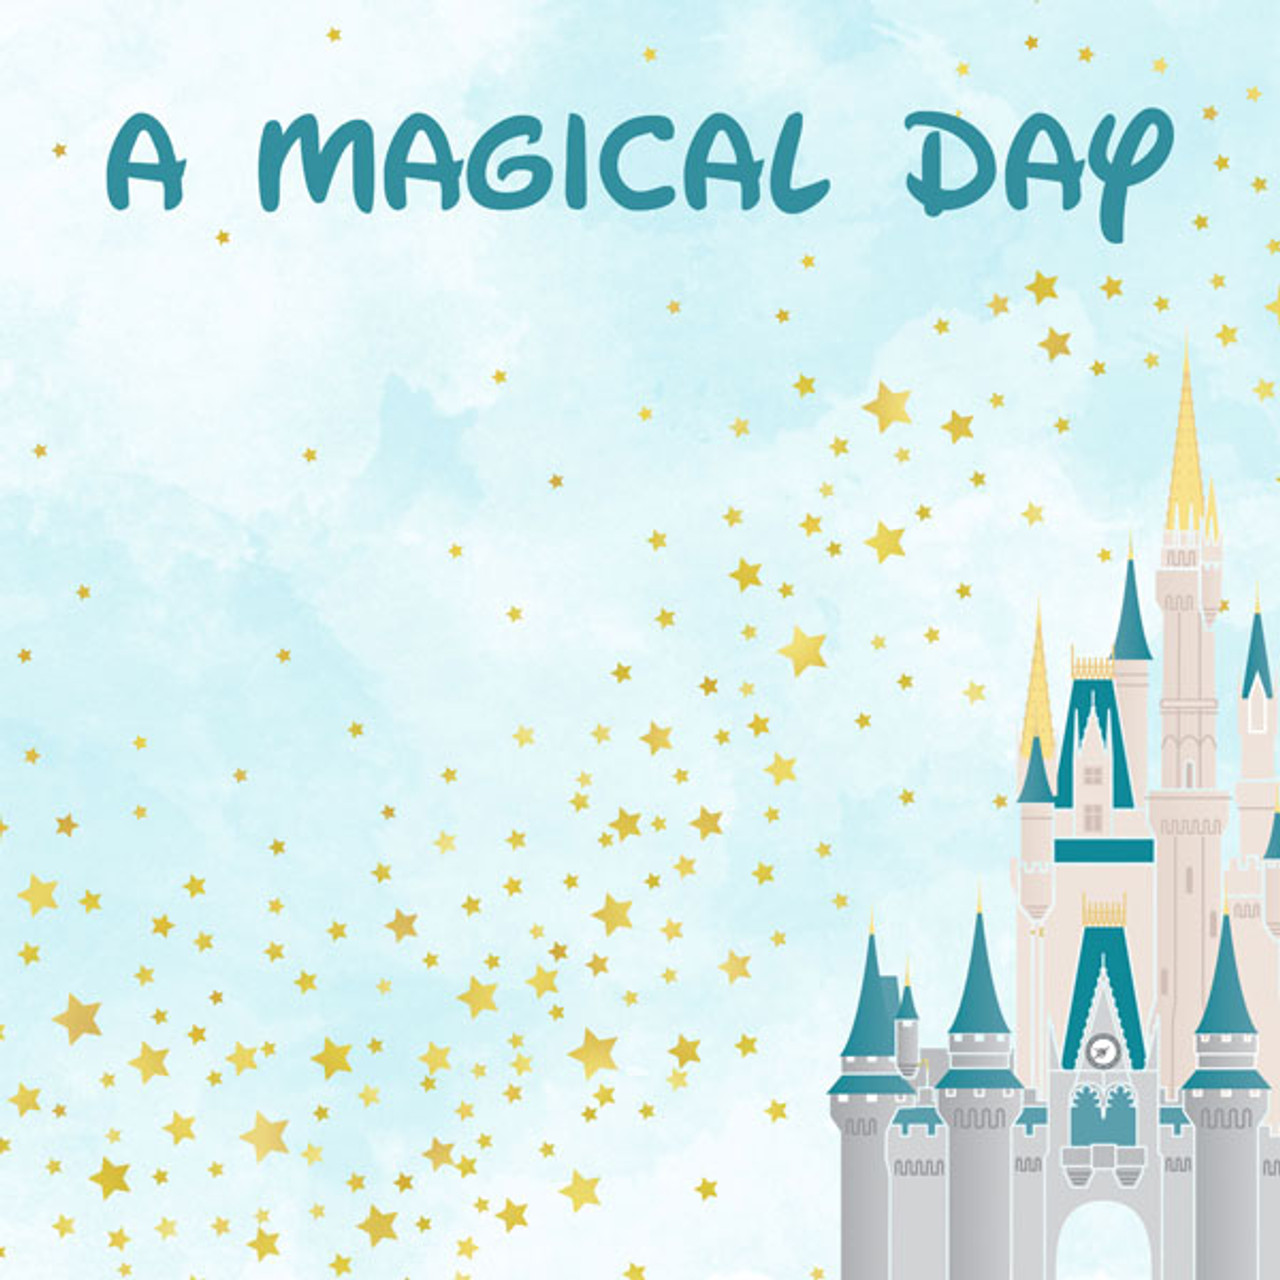 Magical Day of Fun Collection A Magical Day 12 x 12 Double-Sided Scrapbook Paper by Scrapbook Customs